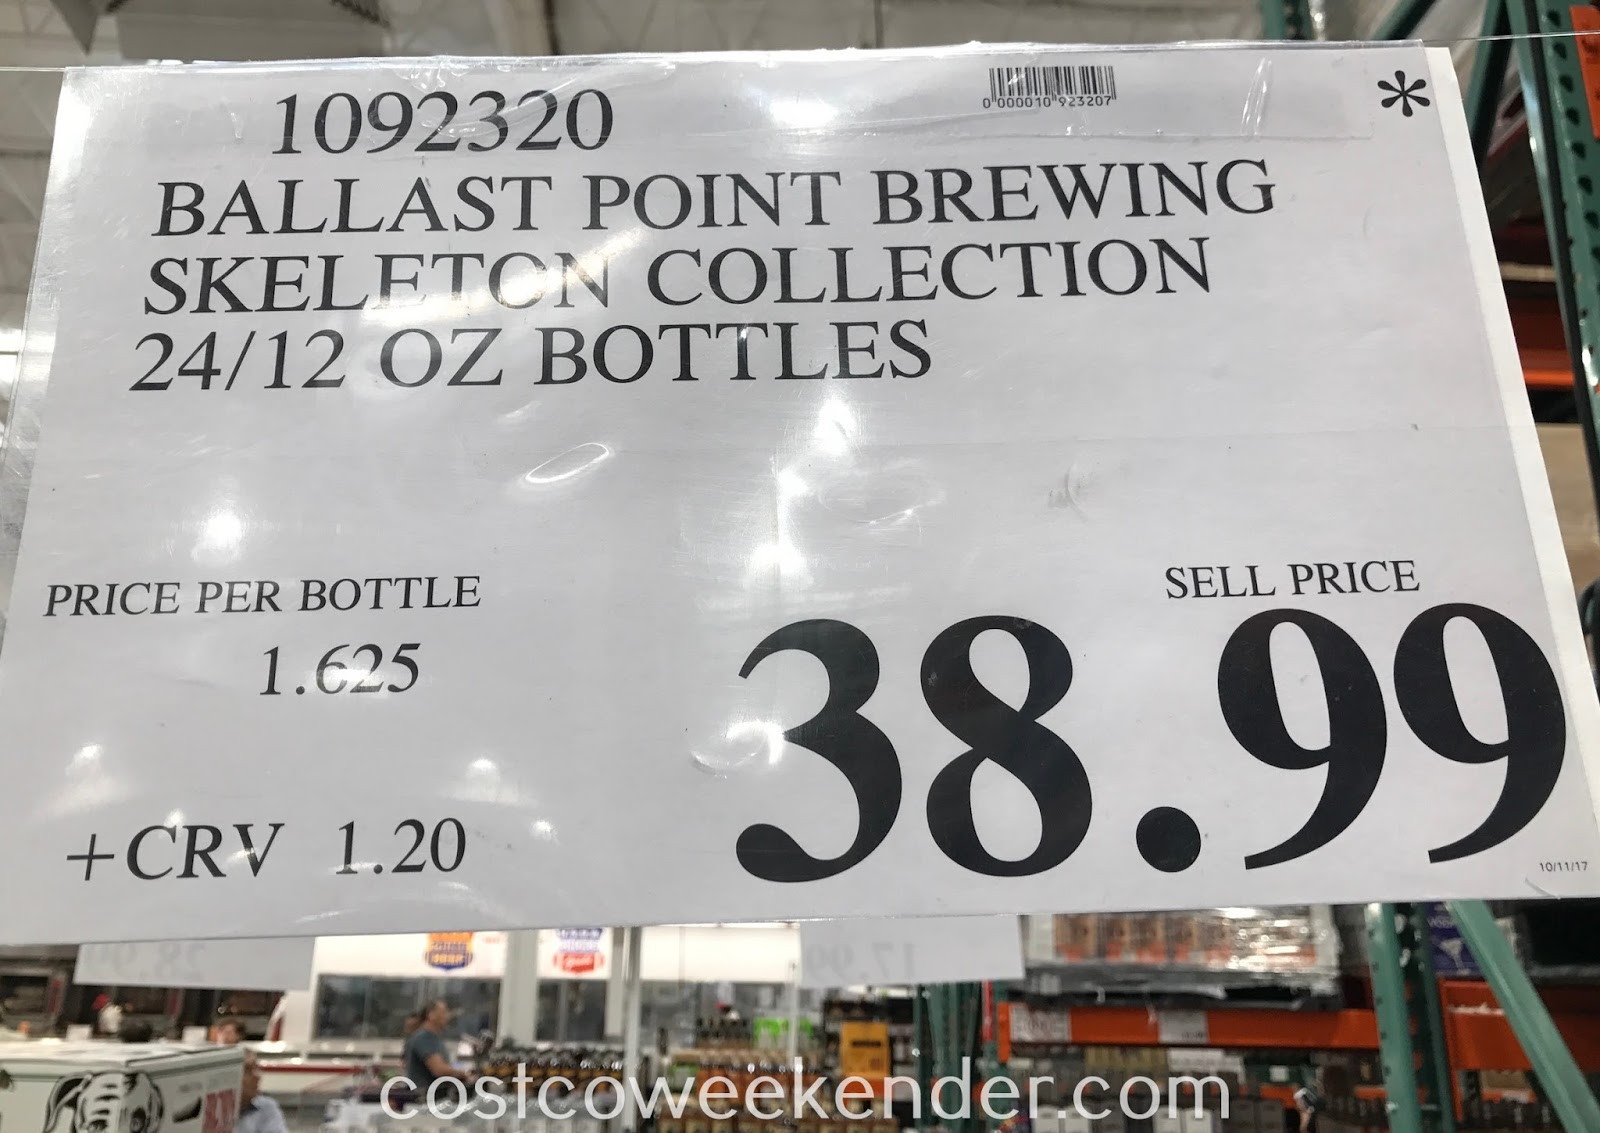 Deal for the Ballast Point Brewing Skeleton Collection at Costco